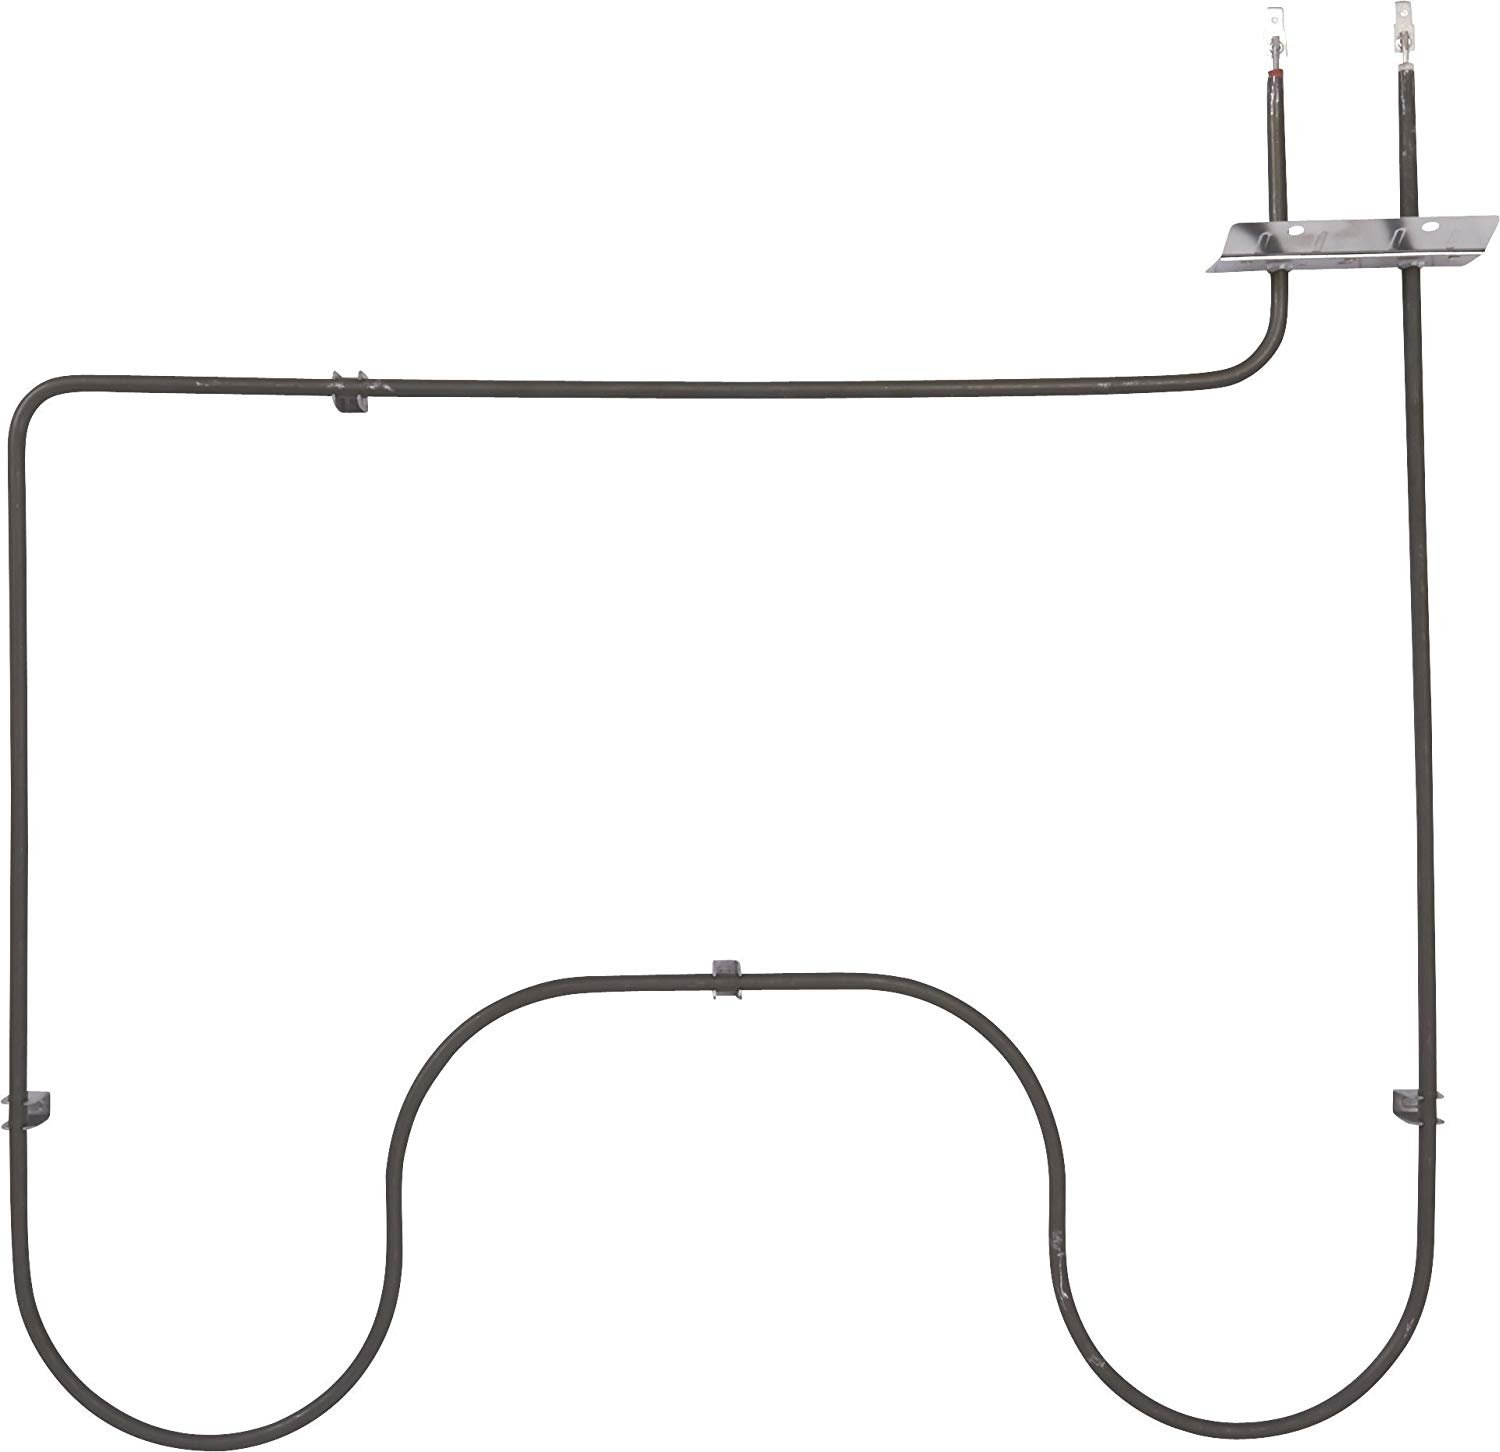 Oven Heating Element Replaces Maytag 74004107, 7406P428-60